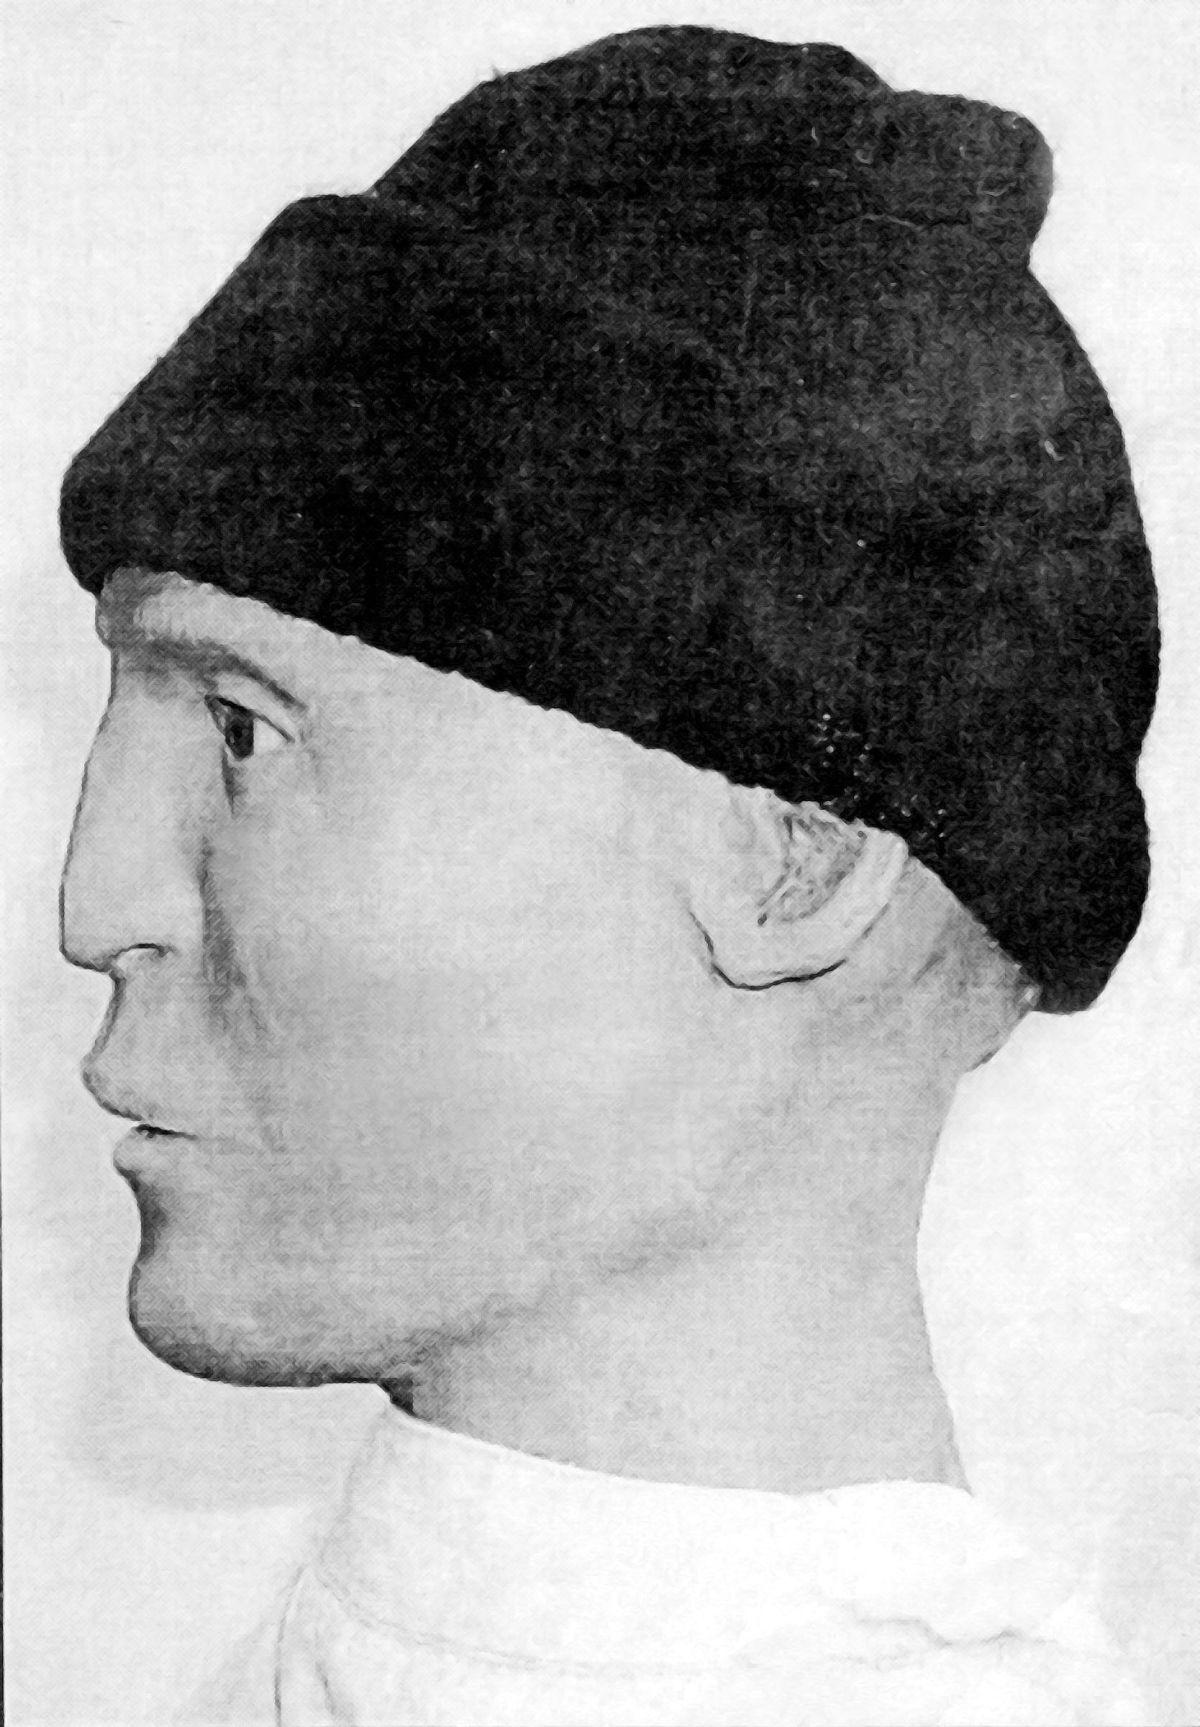 Teton County John Doe